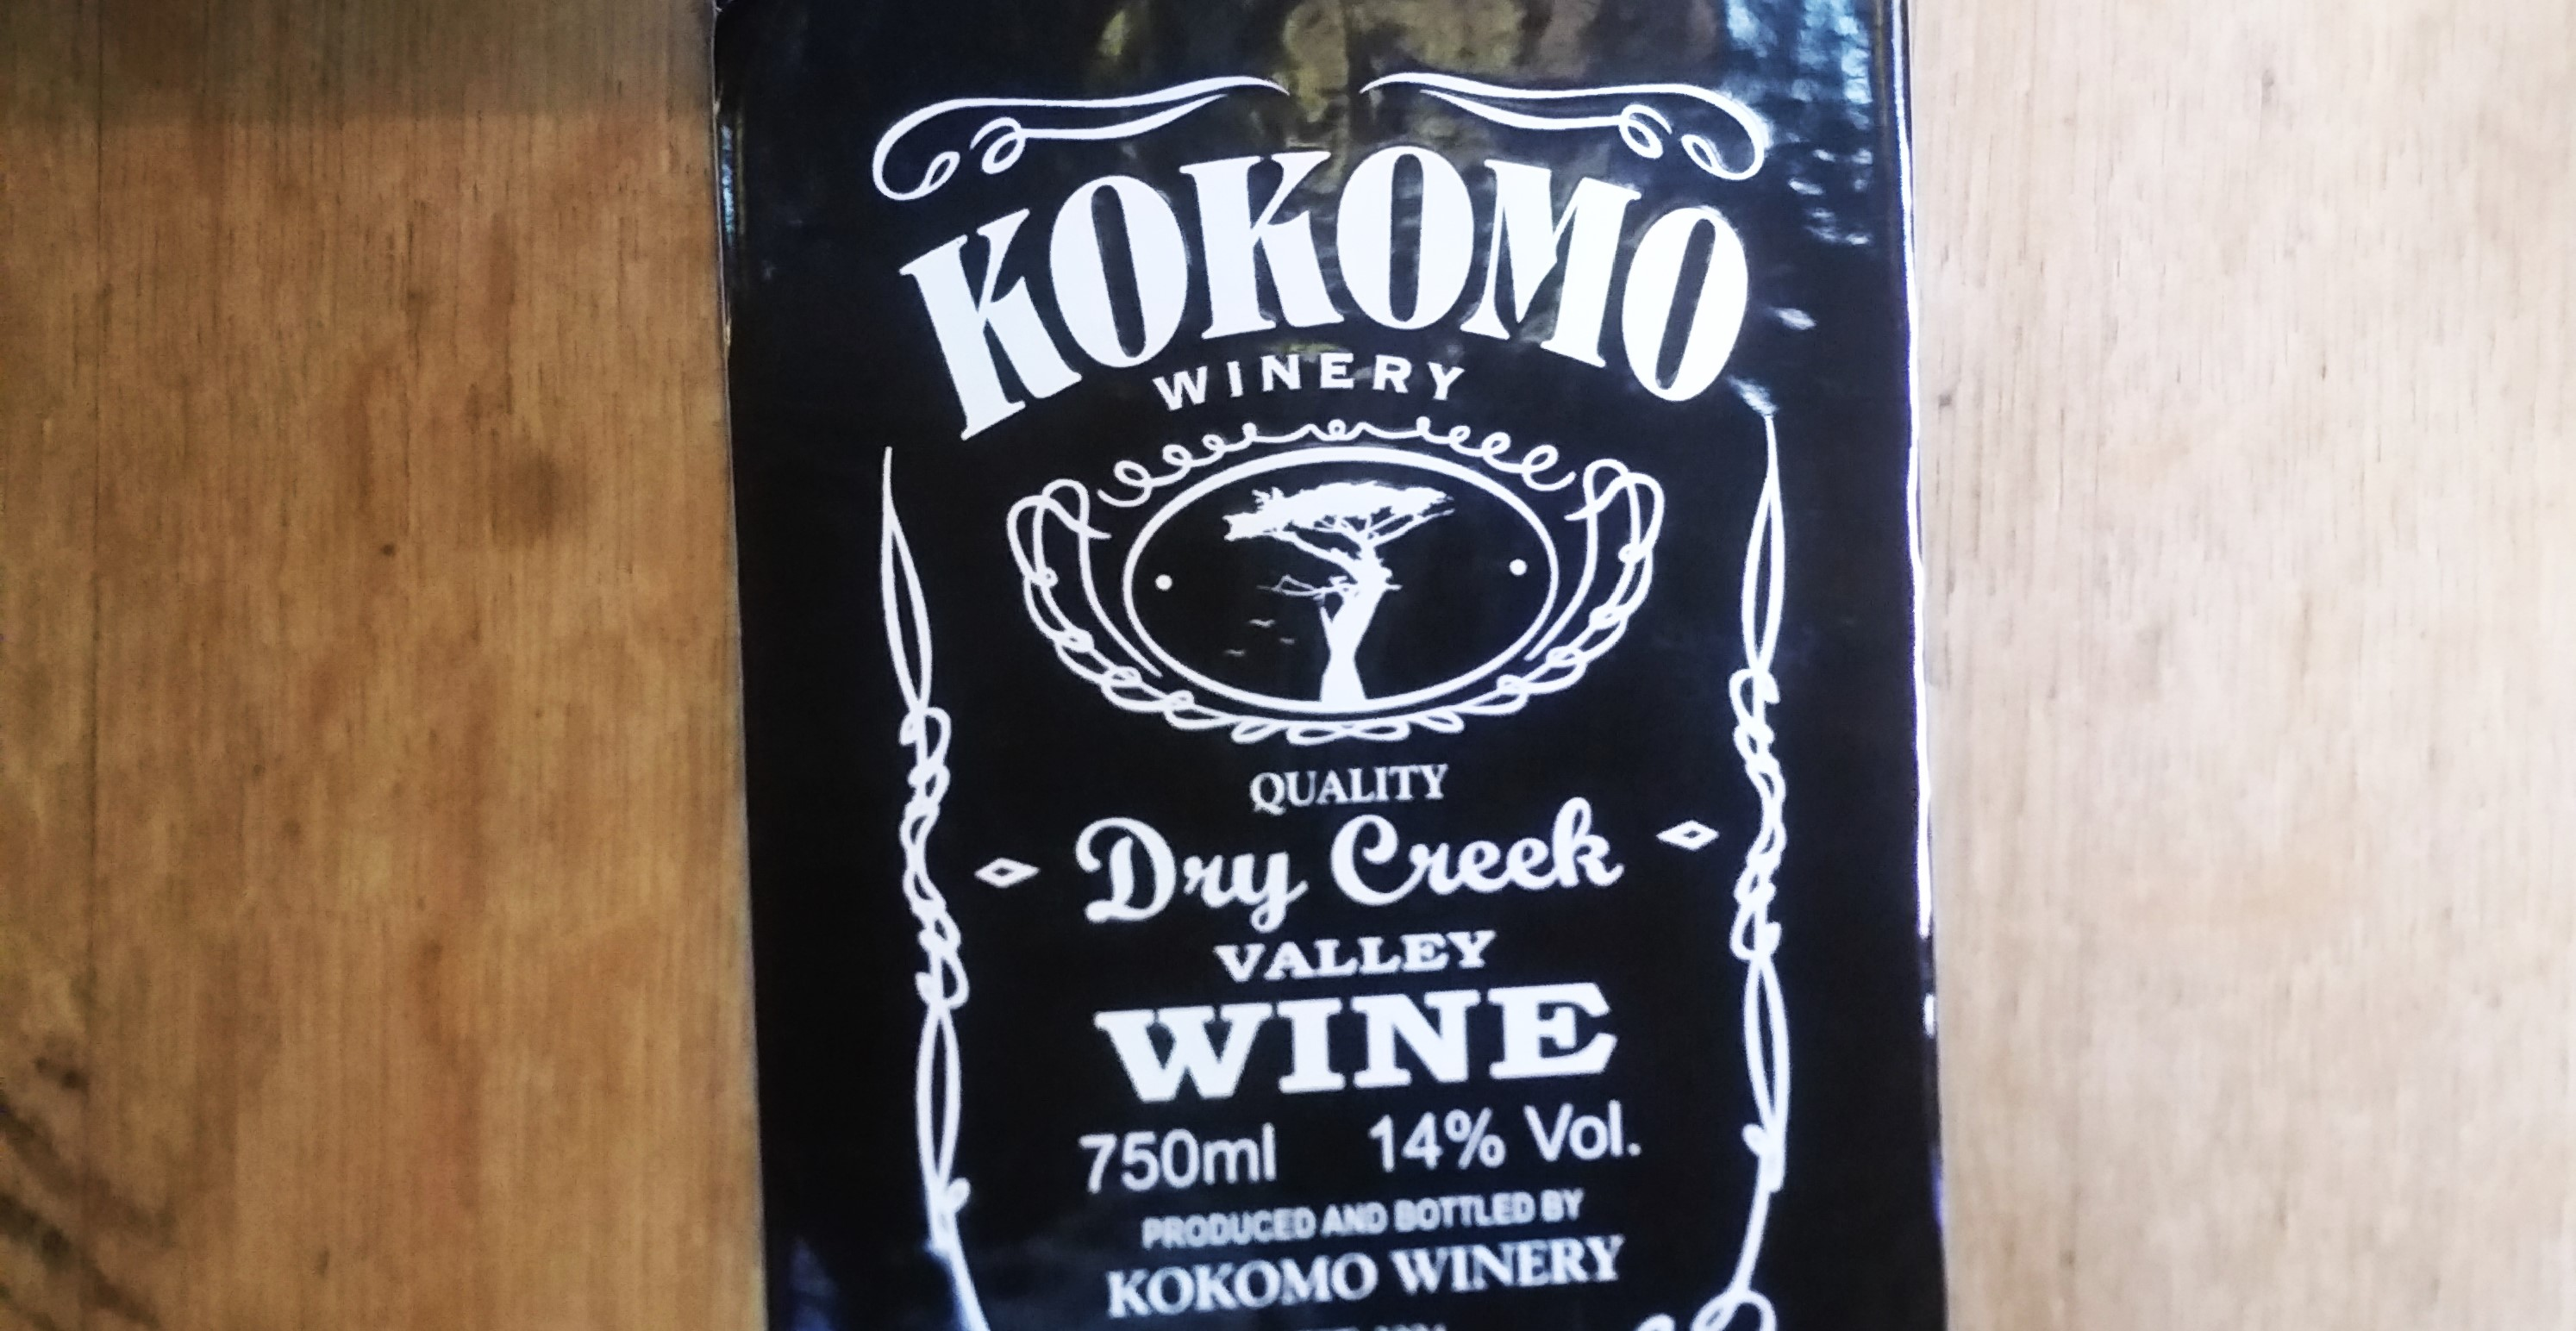 Picture of a Kokomo sticker on a barrel